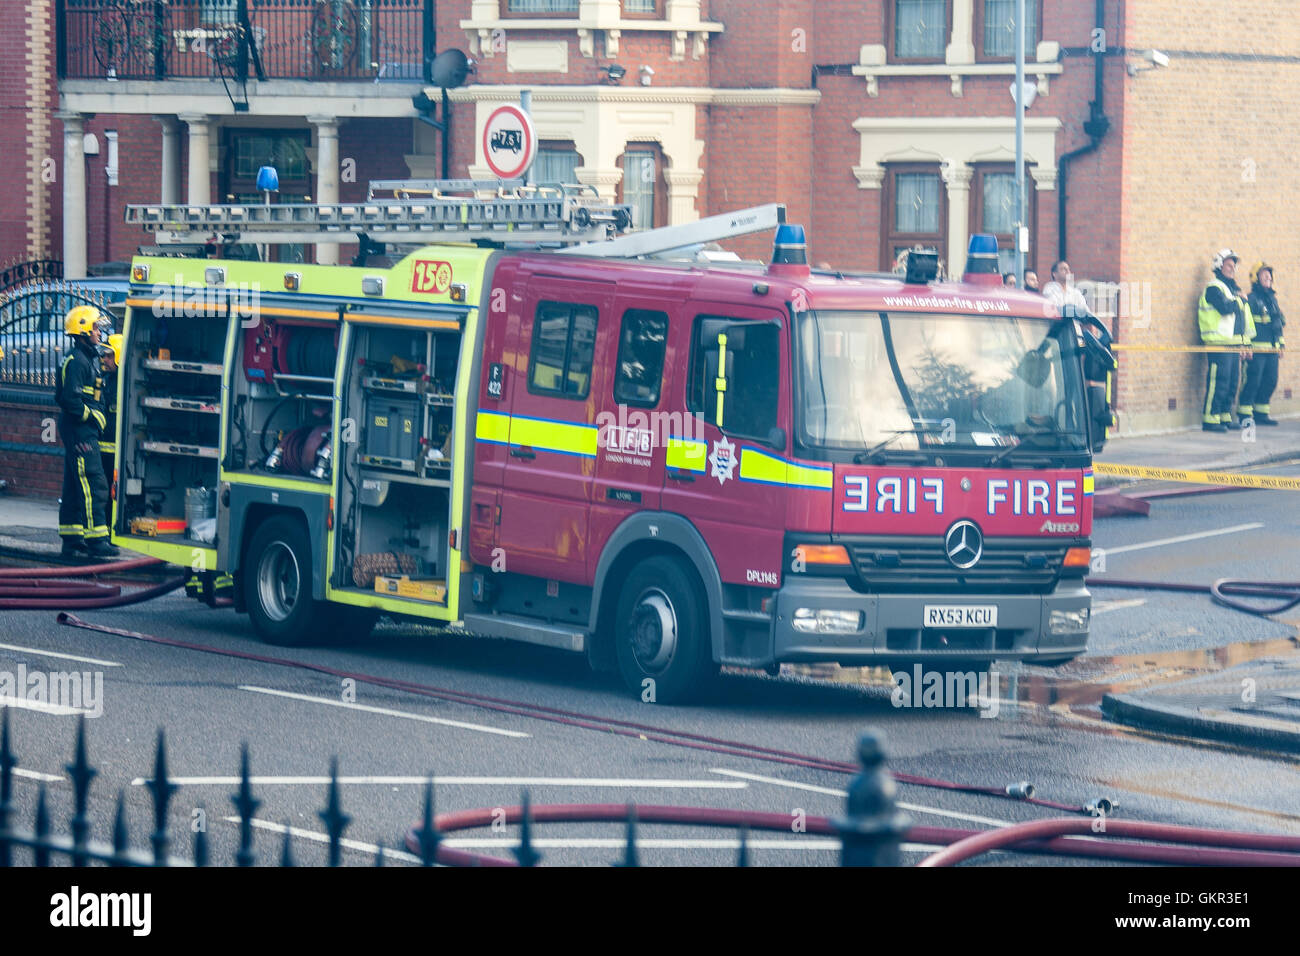 Amazing LFB Mercedes Fire Engine At The Scene Of A Fire.   Stock Image